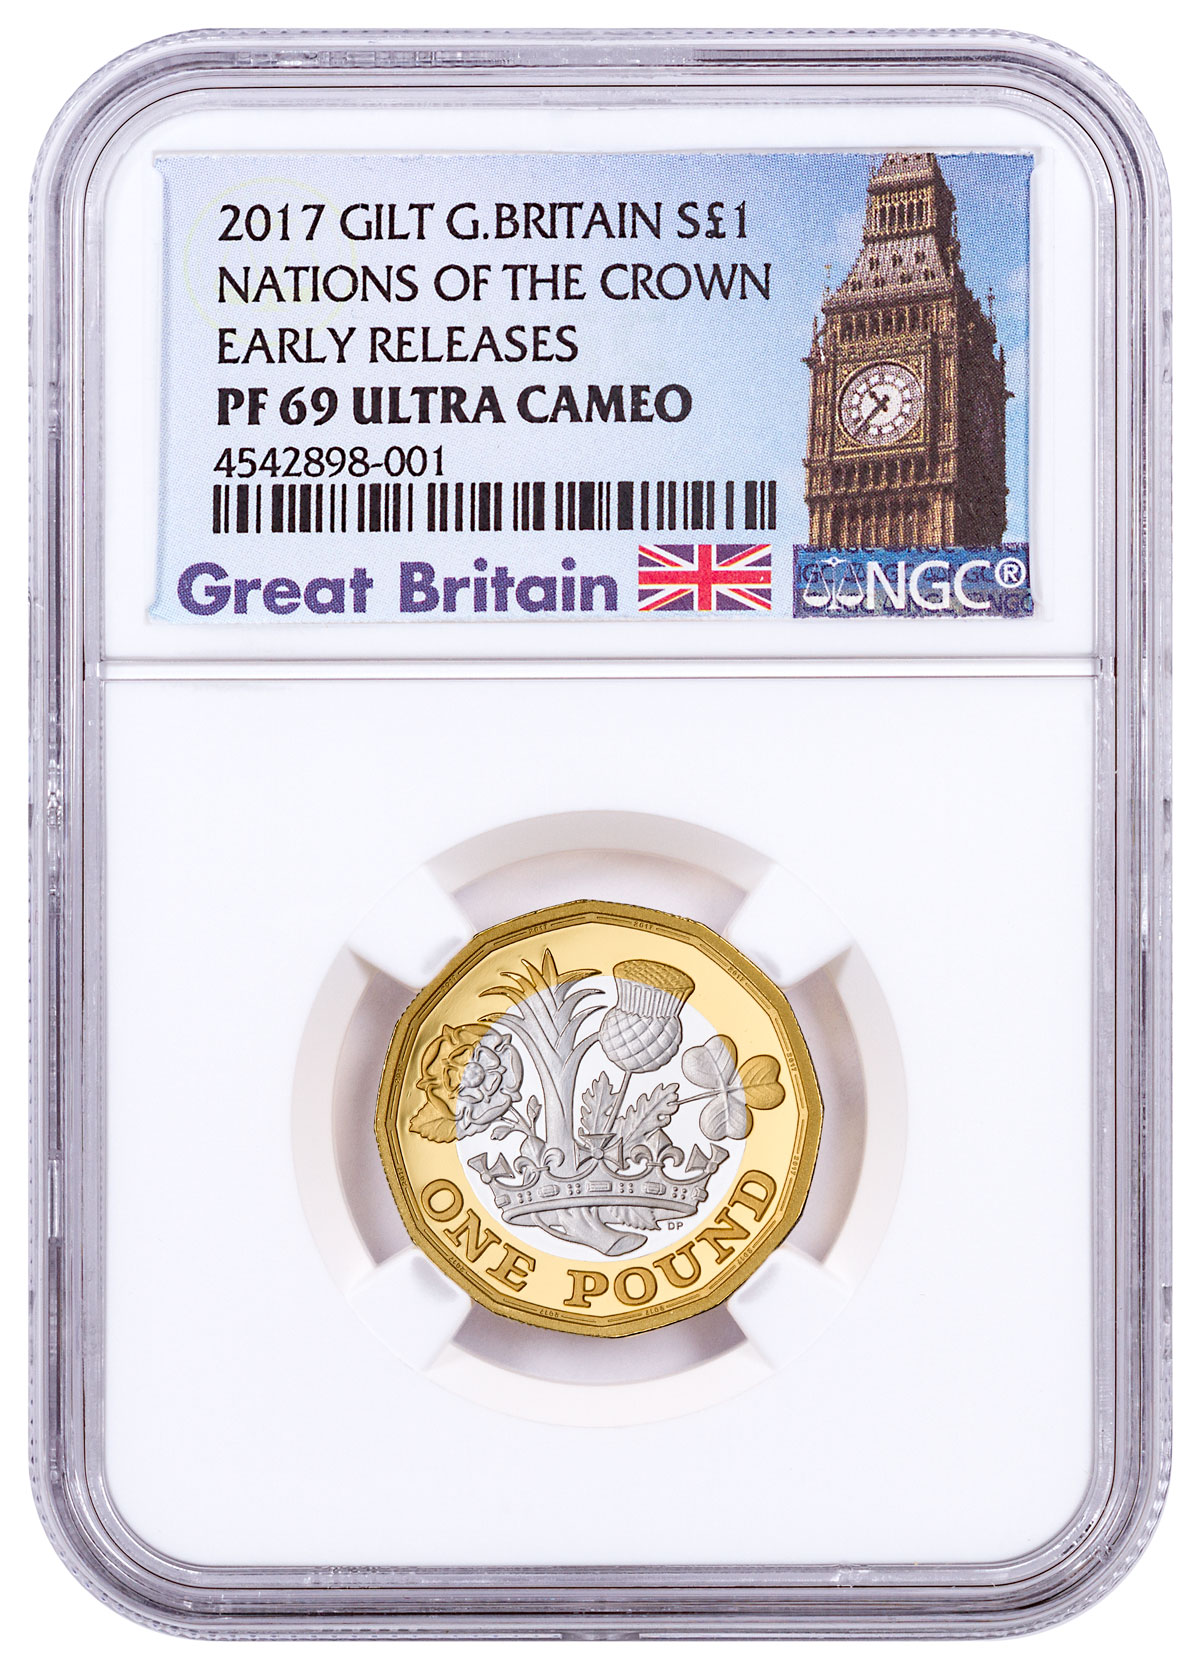 2017 Great Britain Nations of the Crown Silver Gilt Proof £1 Coin NGC PF69 UC ER Exclusive Great Britain Label